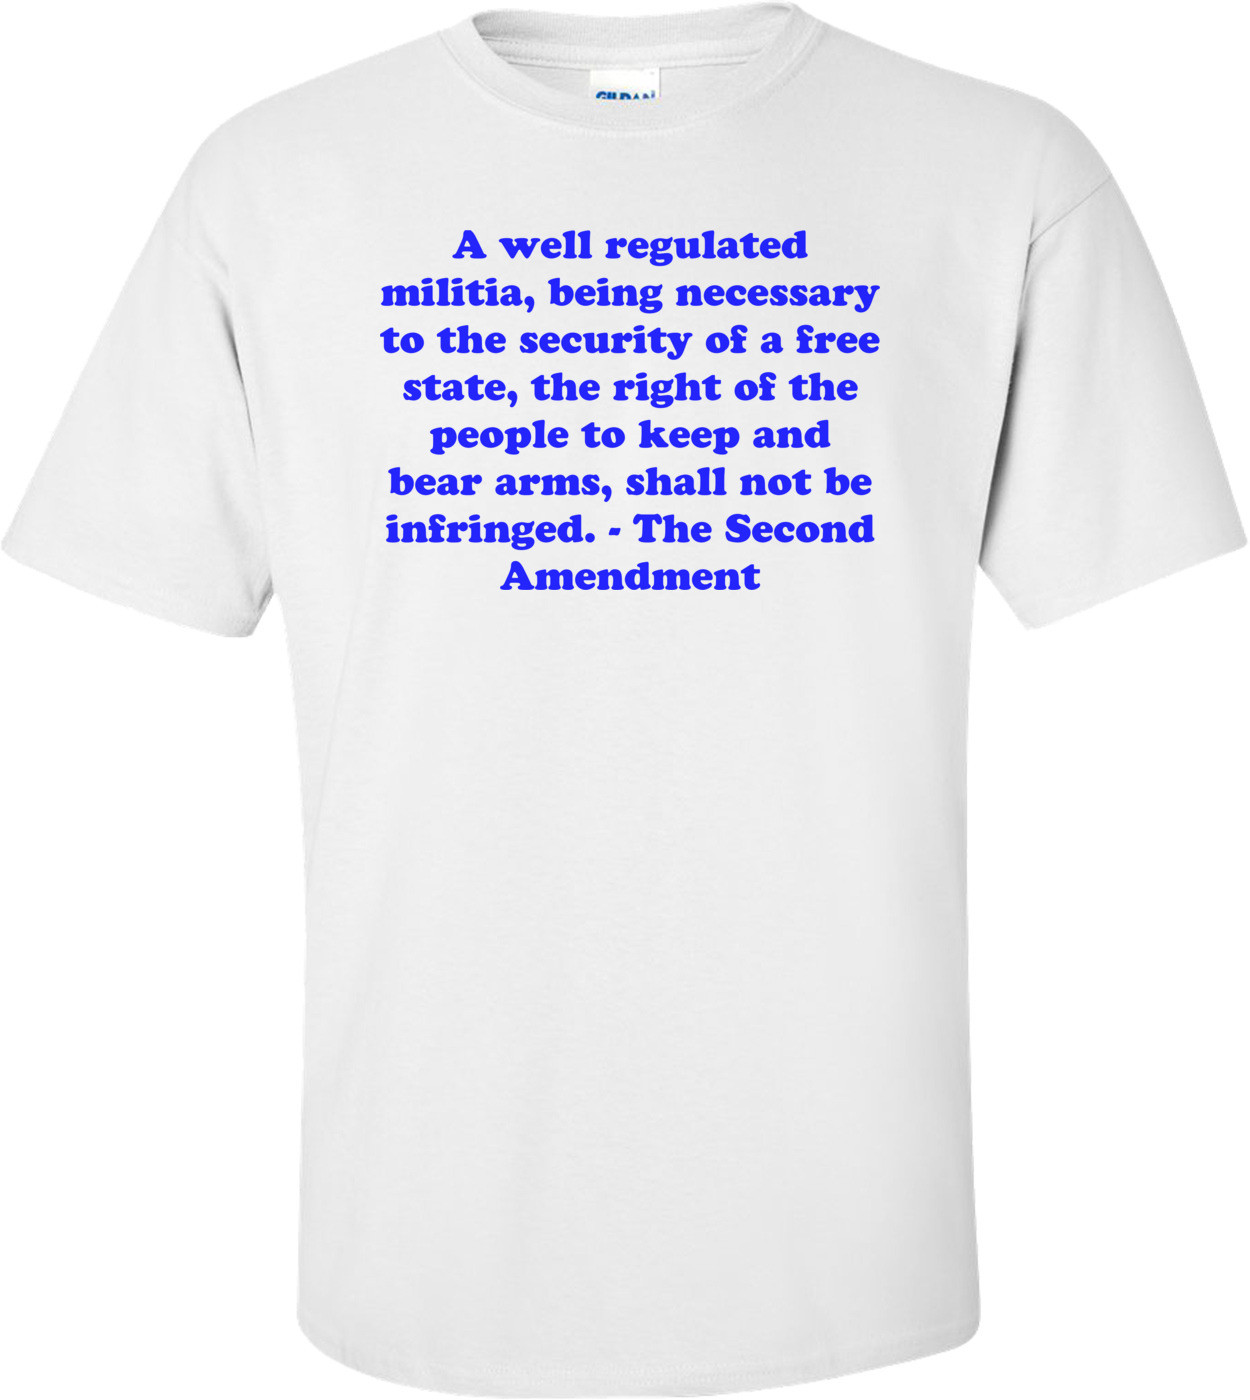 A well regulated militia, being necessary to the security of a free state, the right of the people to keep and bear arms, shall not be infringed. - The Second Amendment Shirt